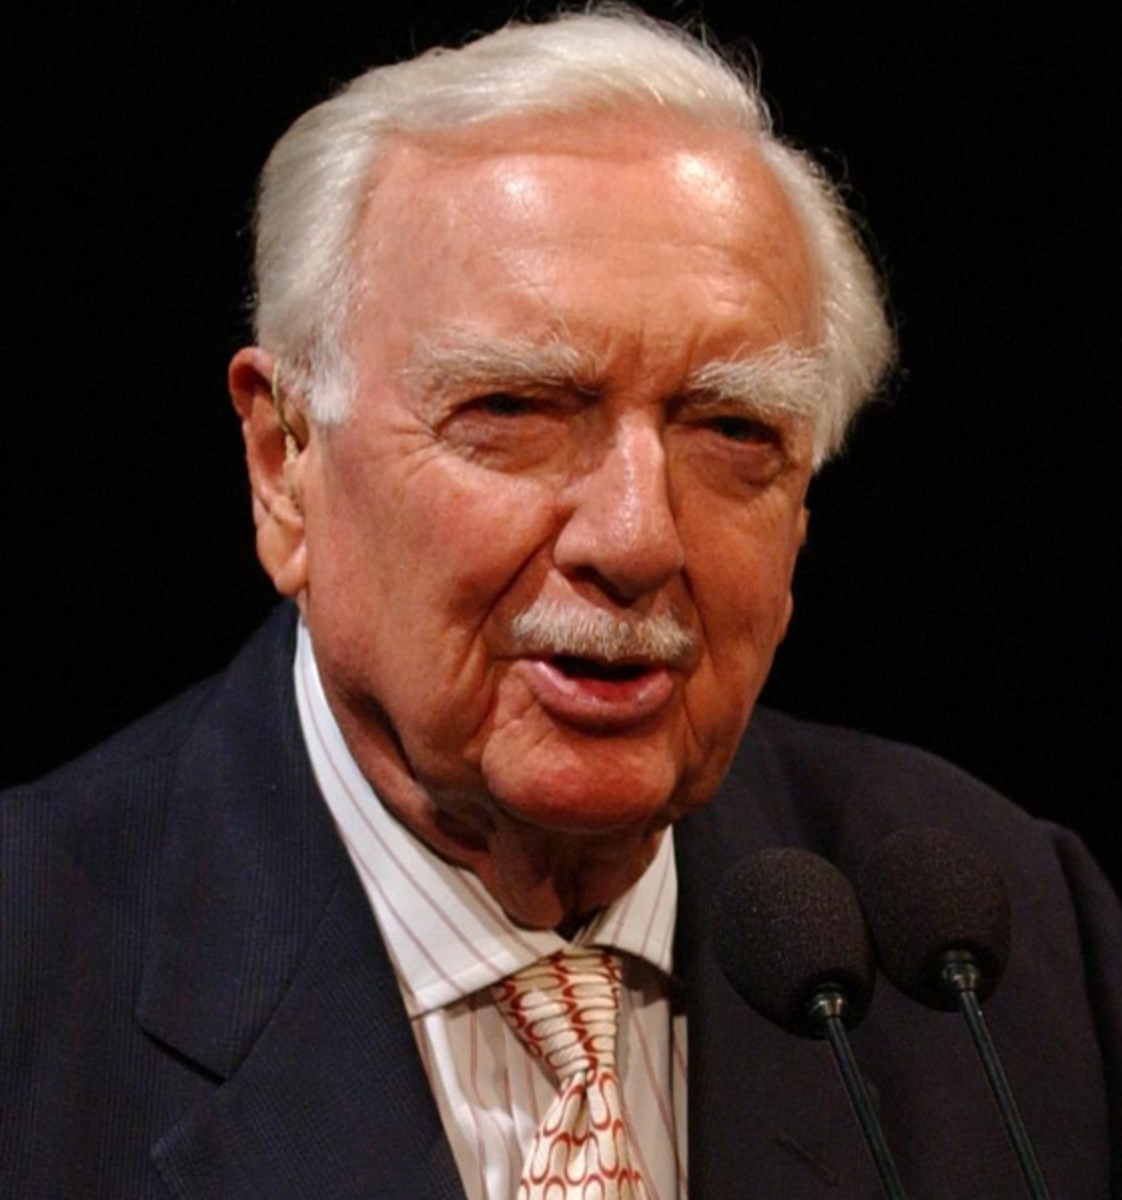 Walter Cronkite speaking at the National Air and Space Museum in Washington.